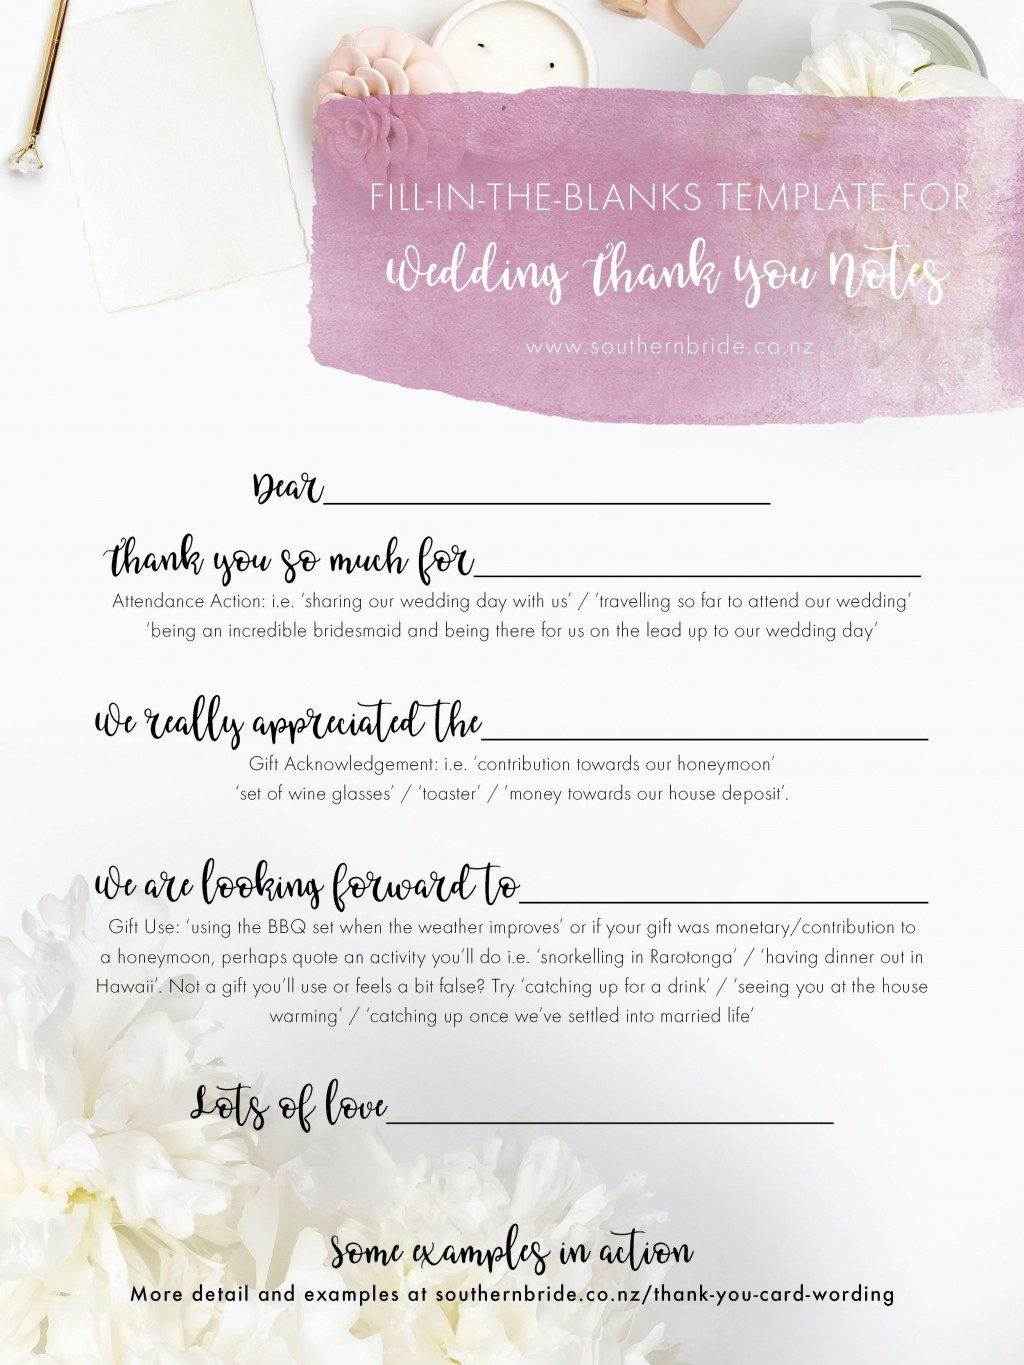 003 Unusual Thank You Note Template For Money Picture  Card Wording Wedding Example Donation GraduationLarge